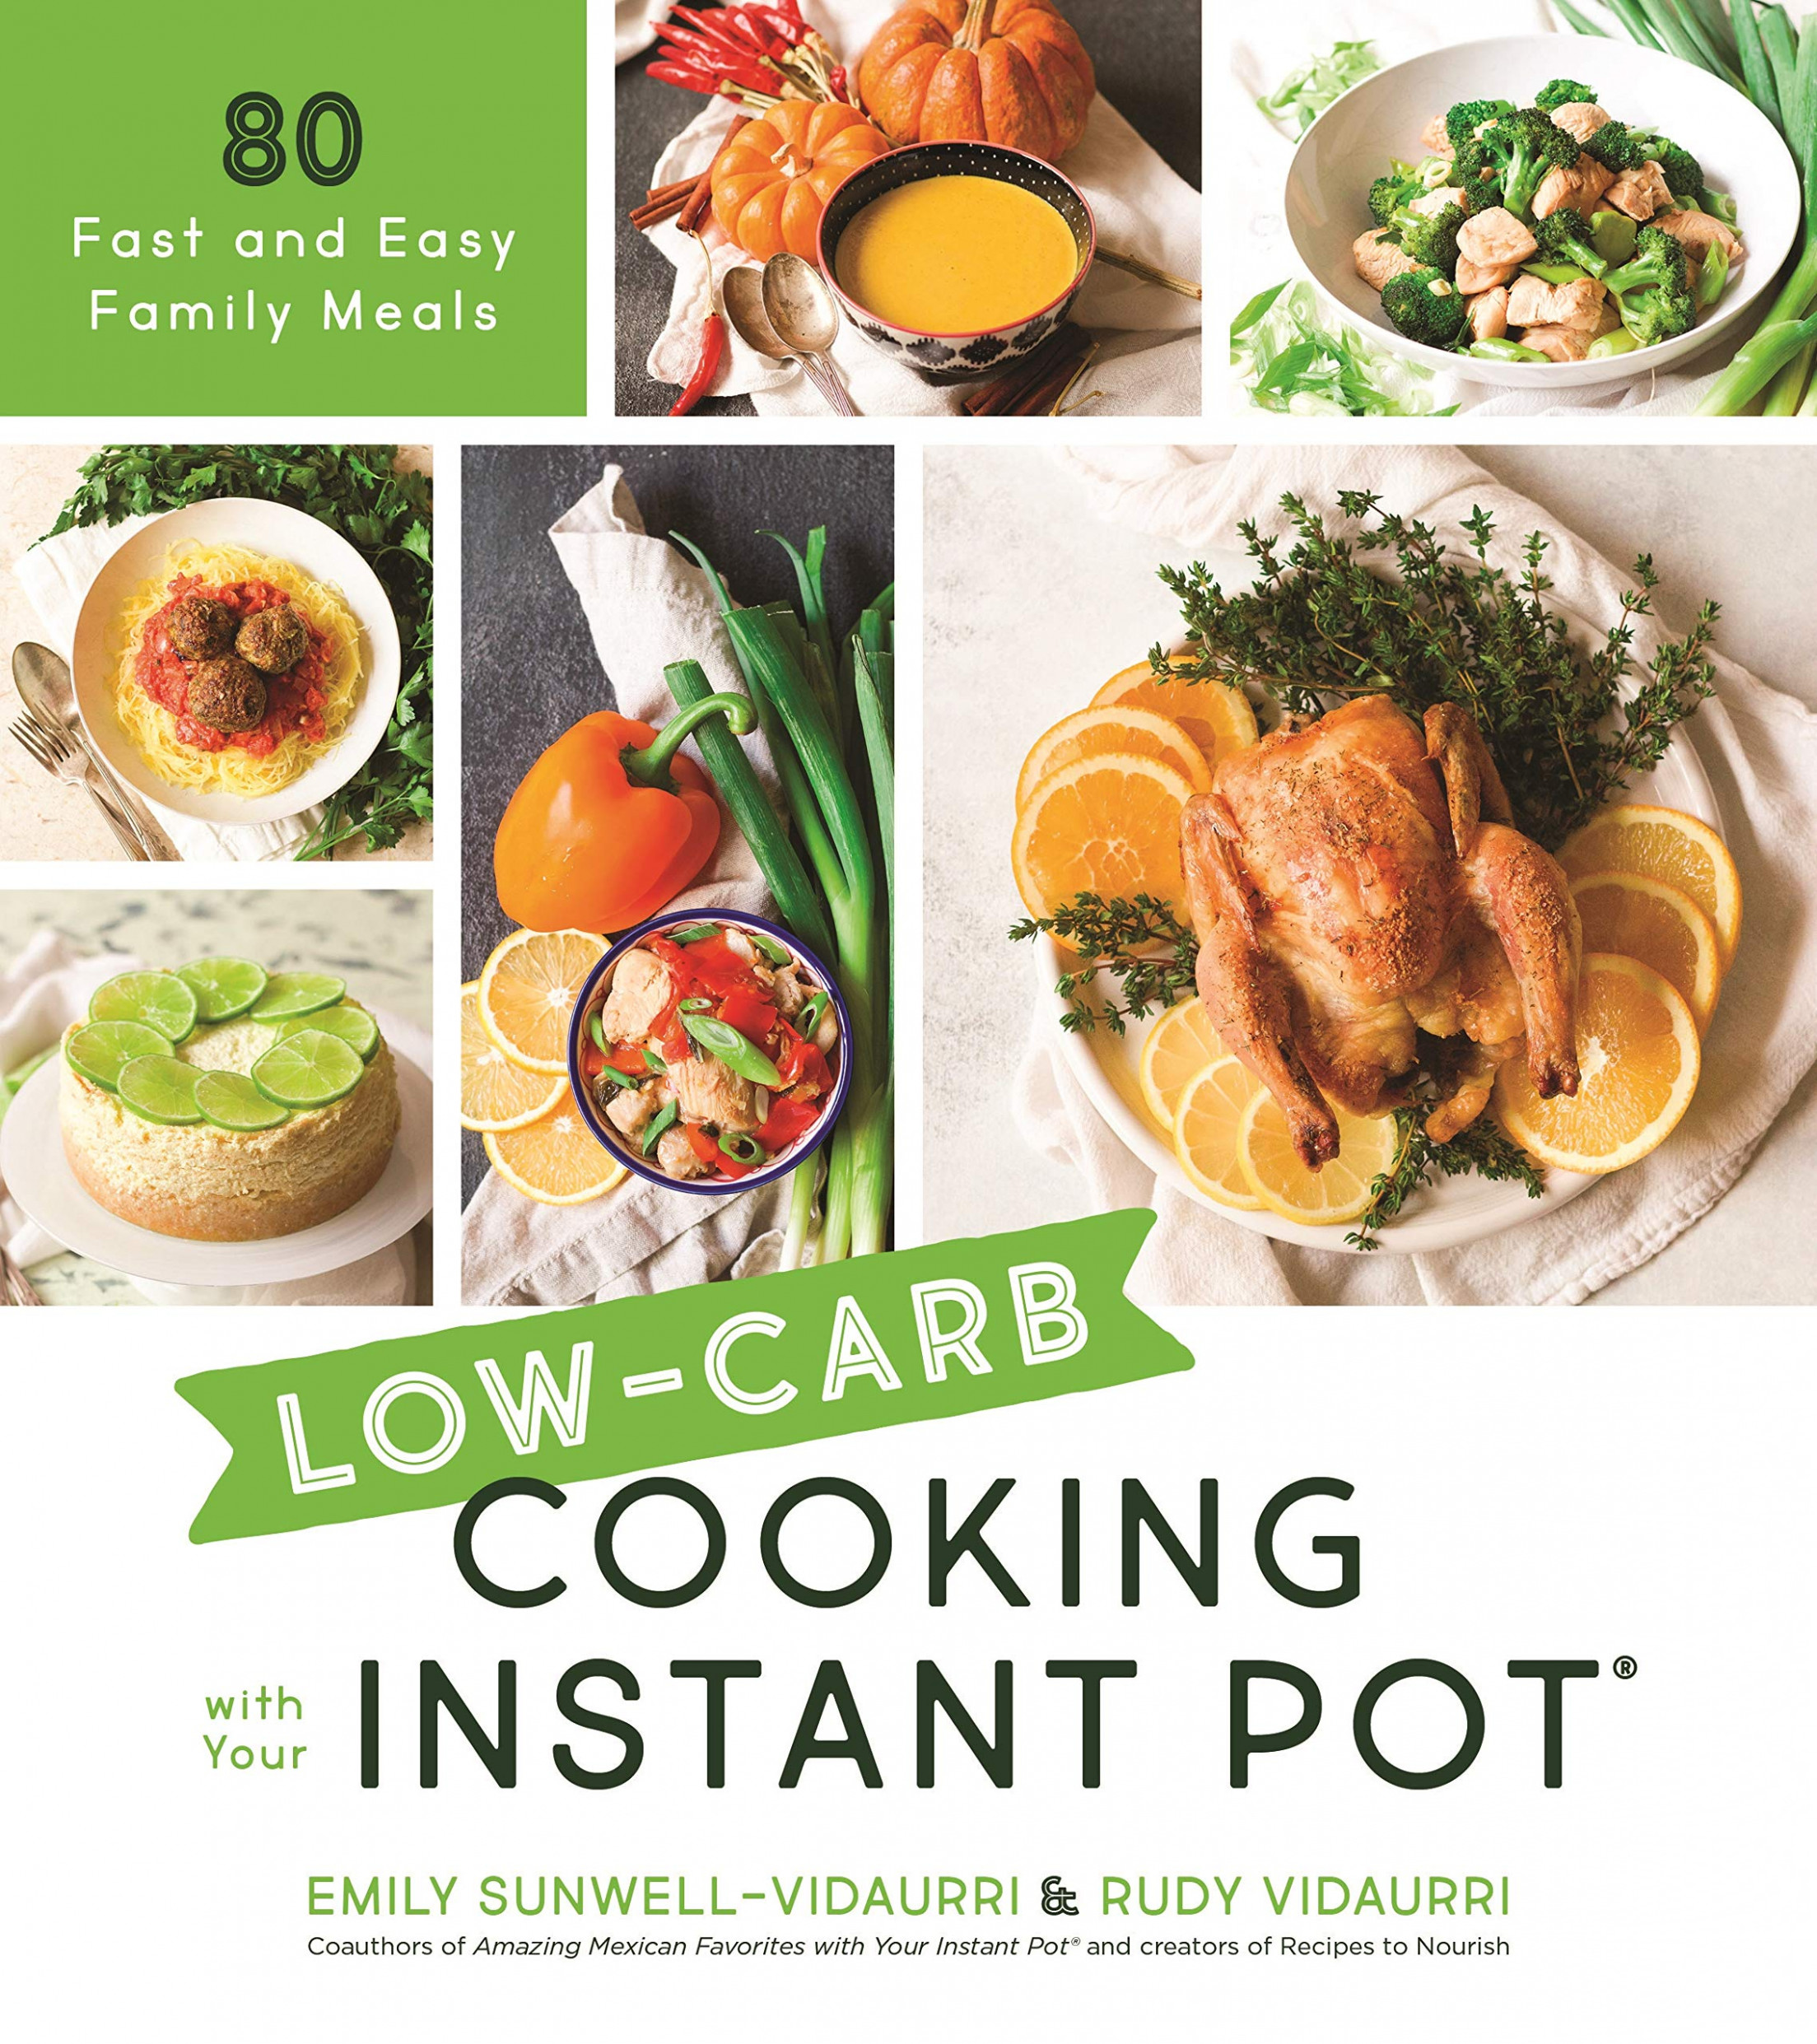 Low-Carb Cooking with Your Instant Pot: 15 Fast and Easy ..